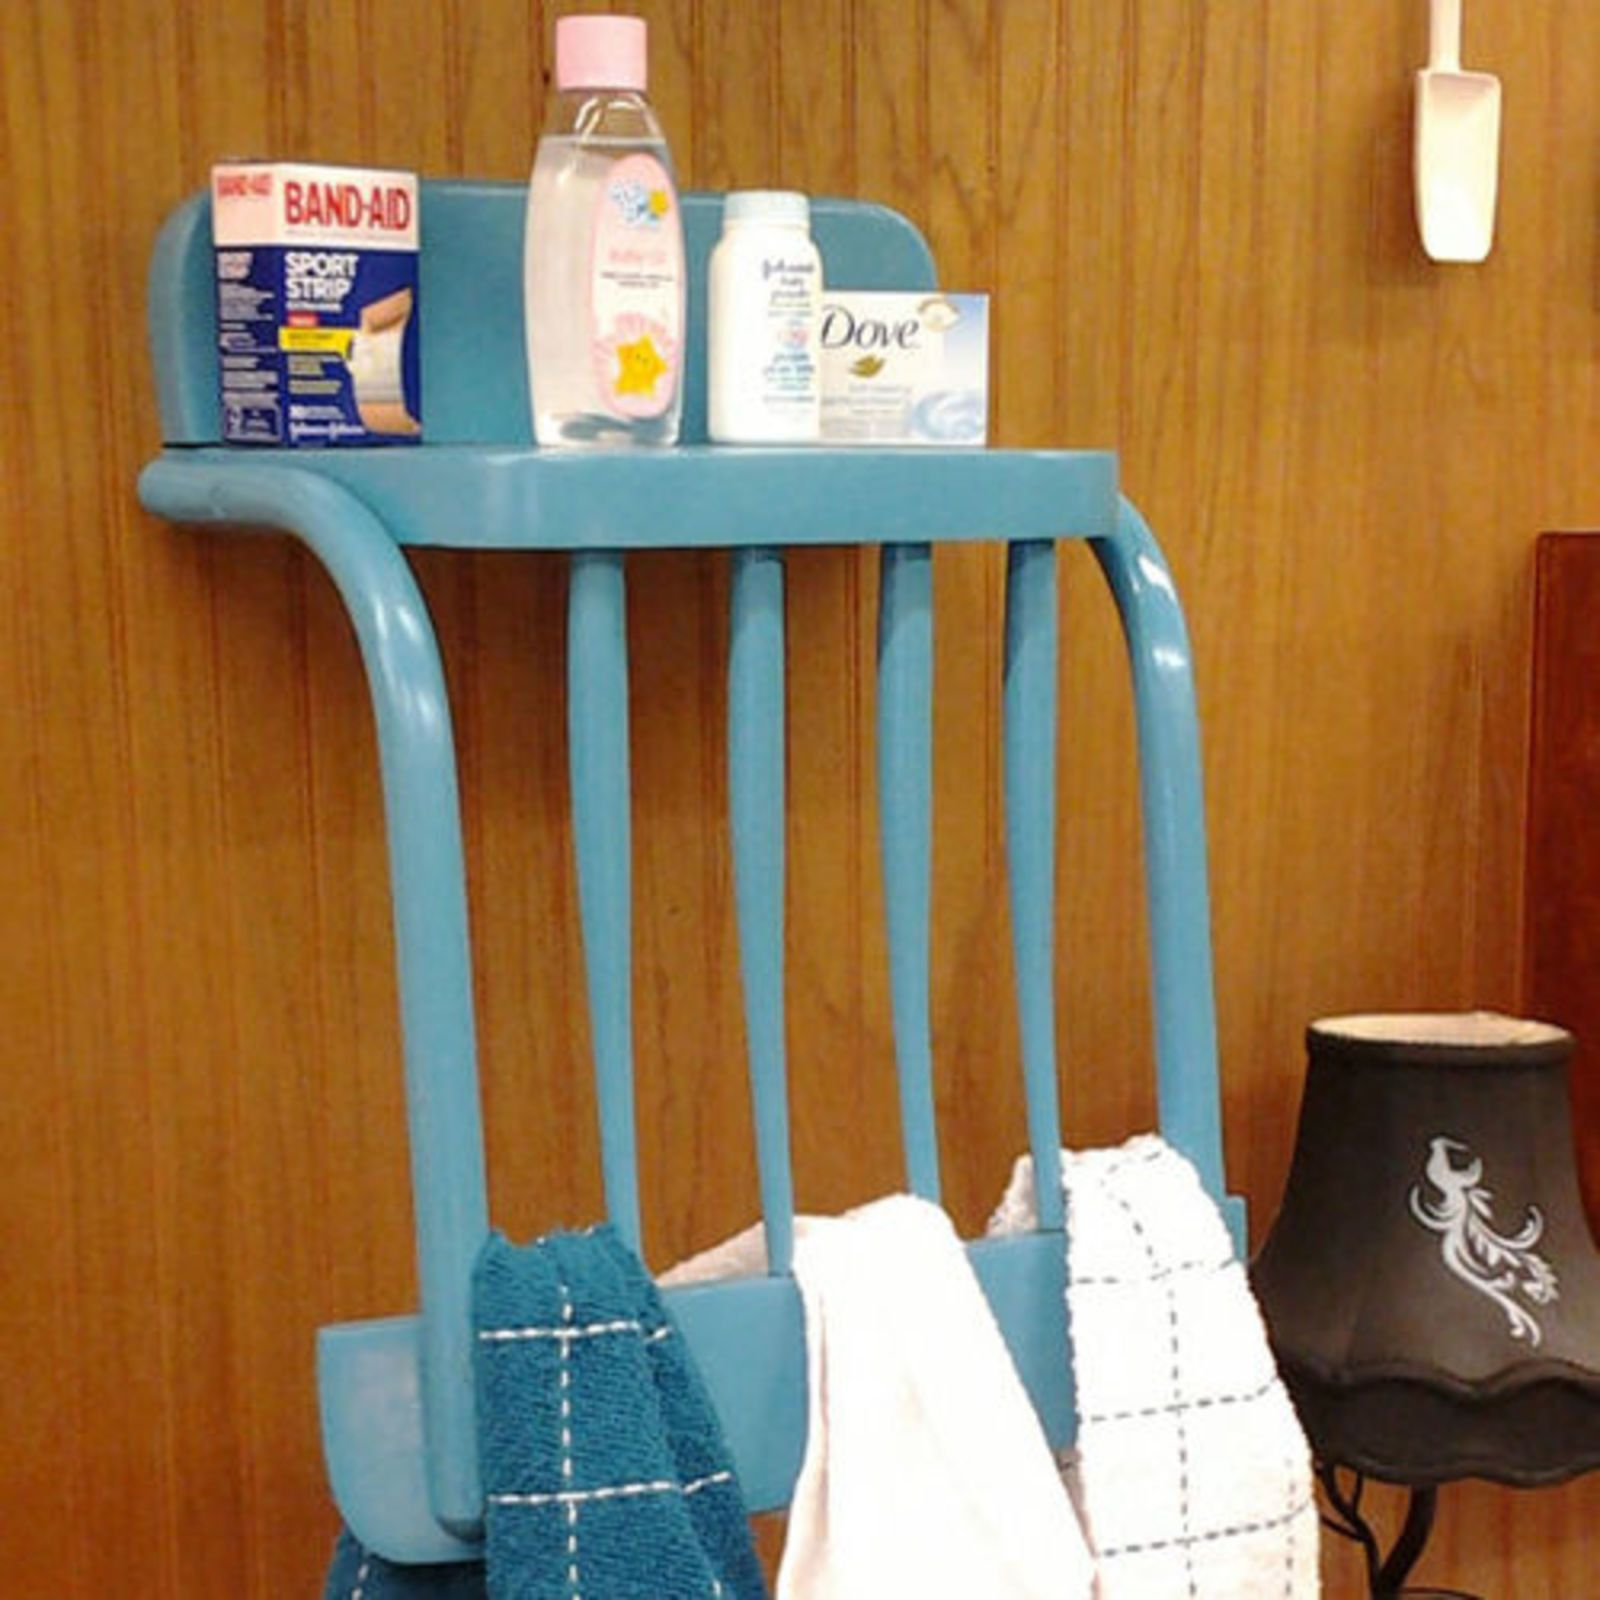 Hanging Upside Down Chair For Back Standing Leaning 10 Bathroom Organization Ideas To Make Mornings Less